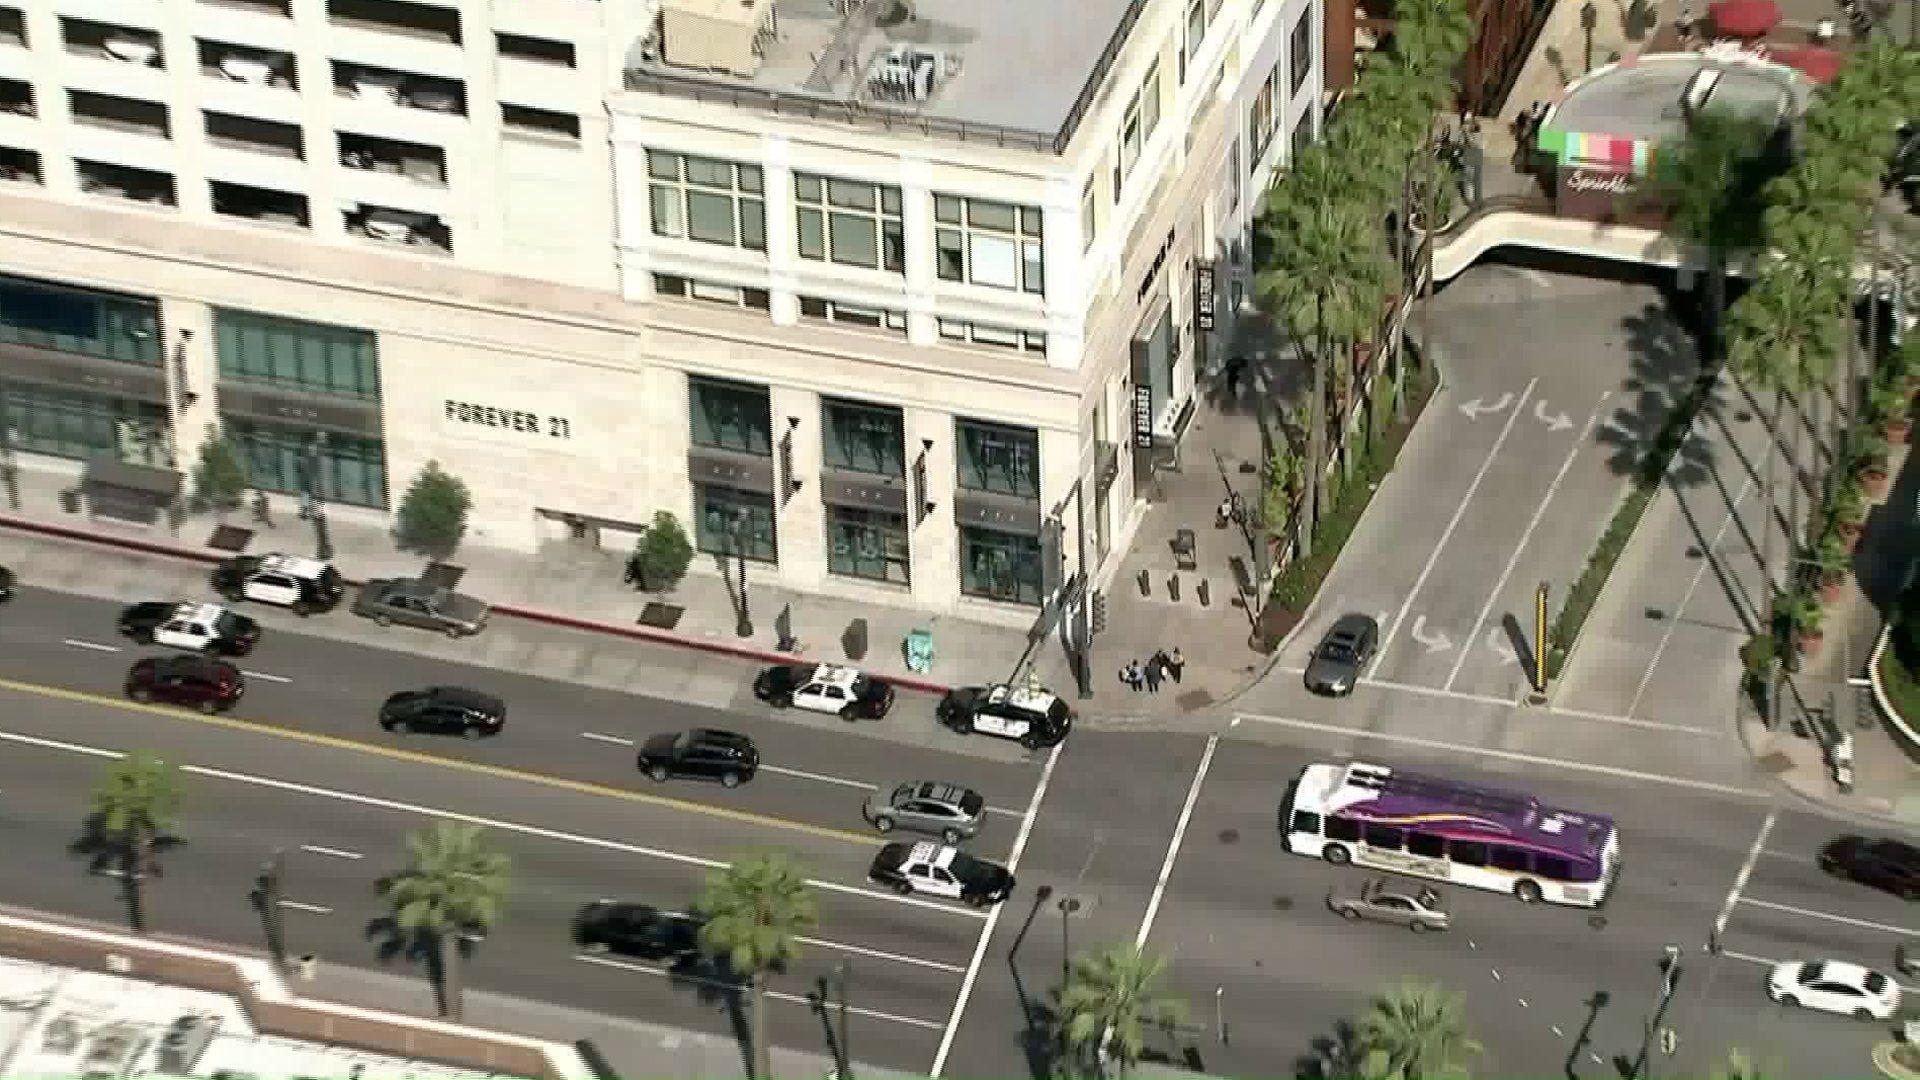 Police respond to the Americana at Brand mall in Glendale after a man jumped from a roof there and landed on another man on April 2, 2019. (Credit: KTLA)